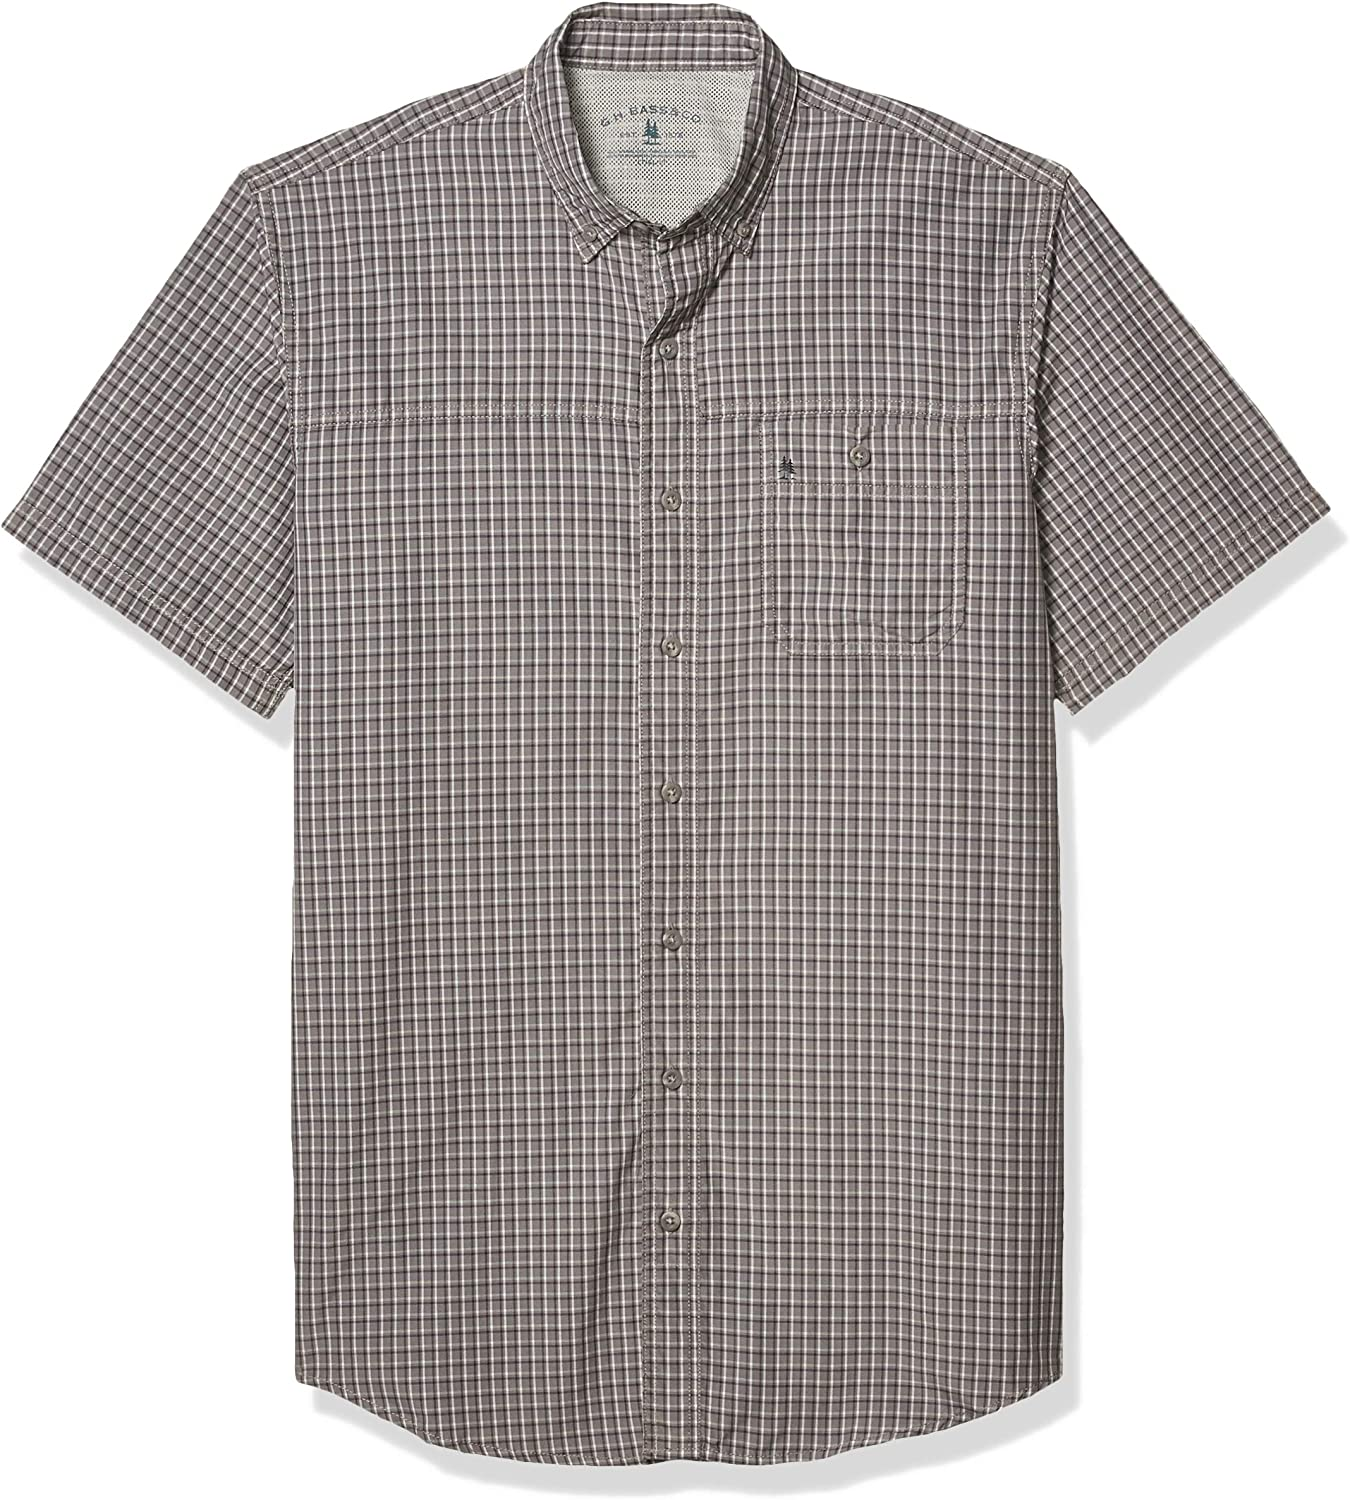 G.H. Bass & Co. Men's Big and Tall Explorer Short Sleeve Fishing Shirt Plaid Button Pocket